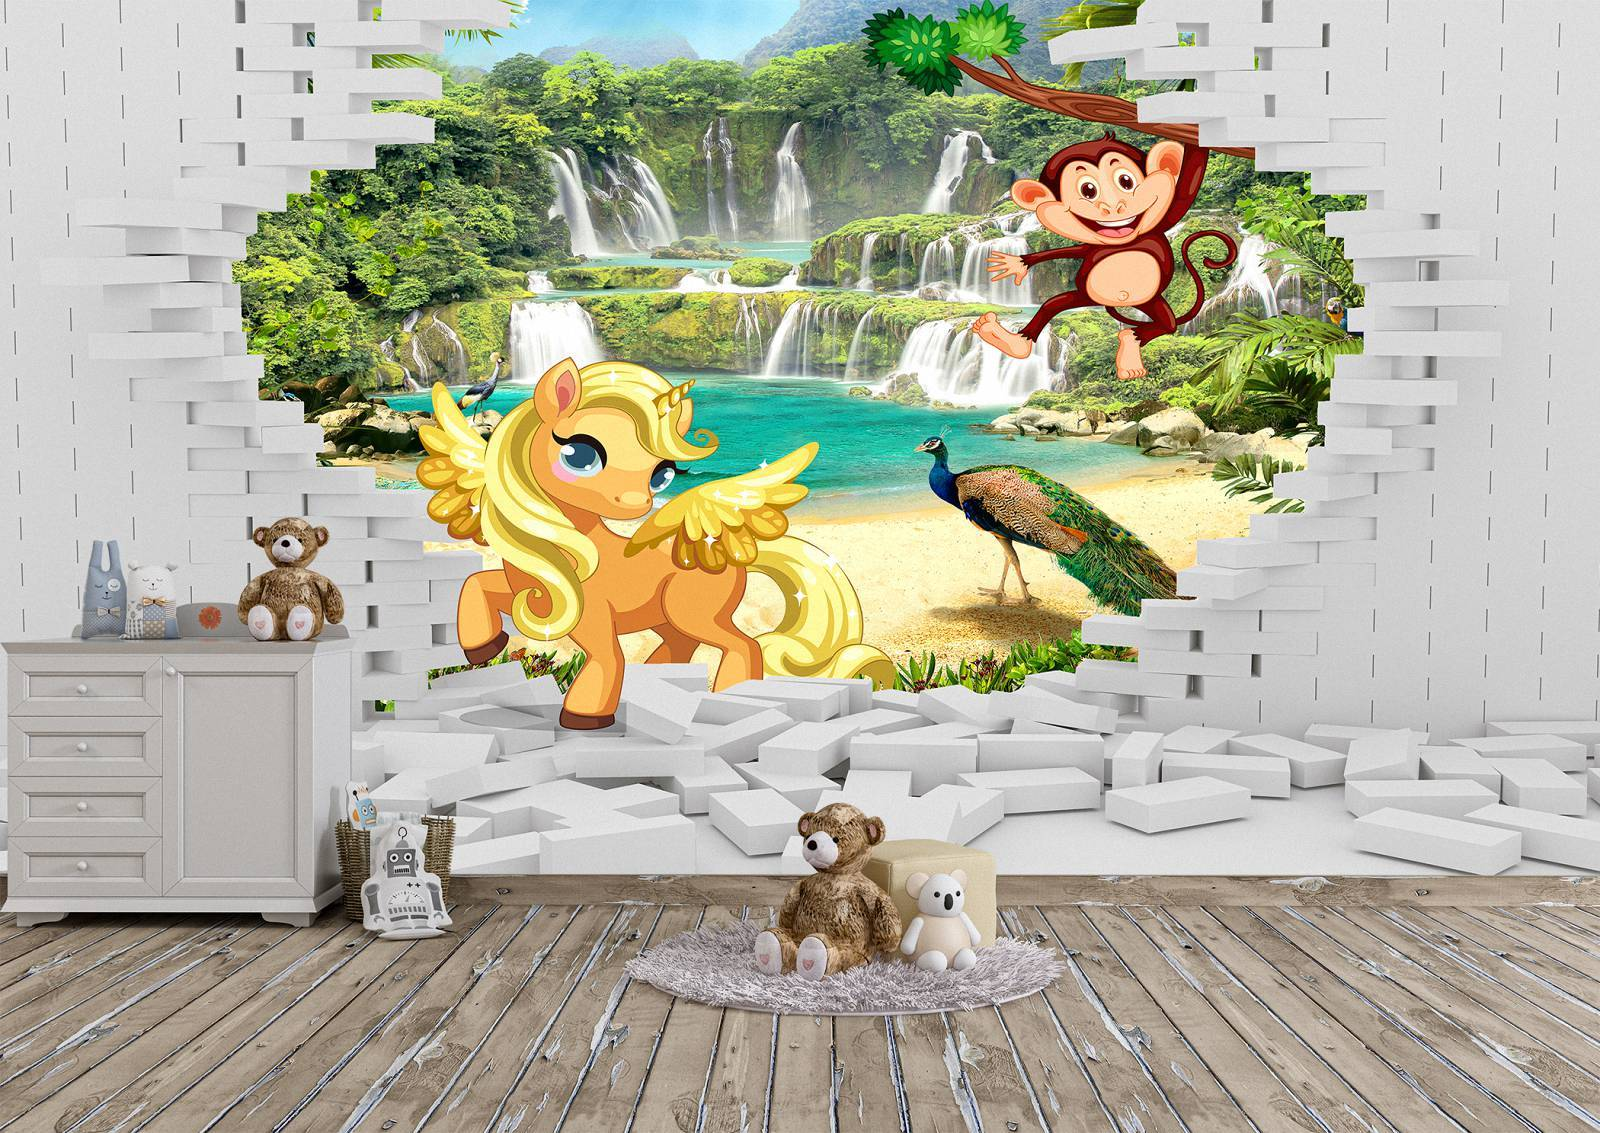 Animals Coming Out the Wall Mural Photo Wallpaper UV Print Decal Art Décor